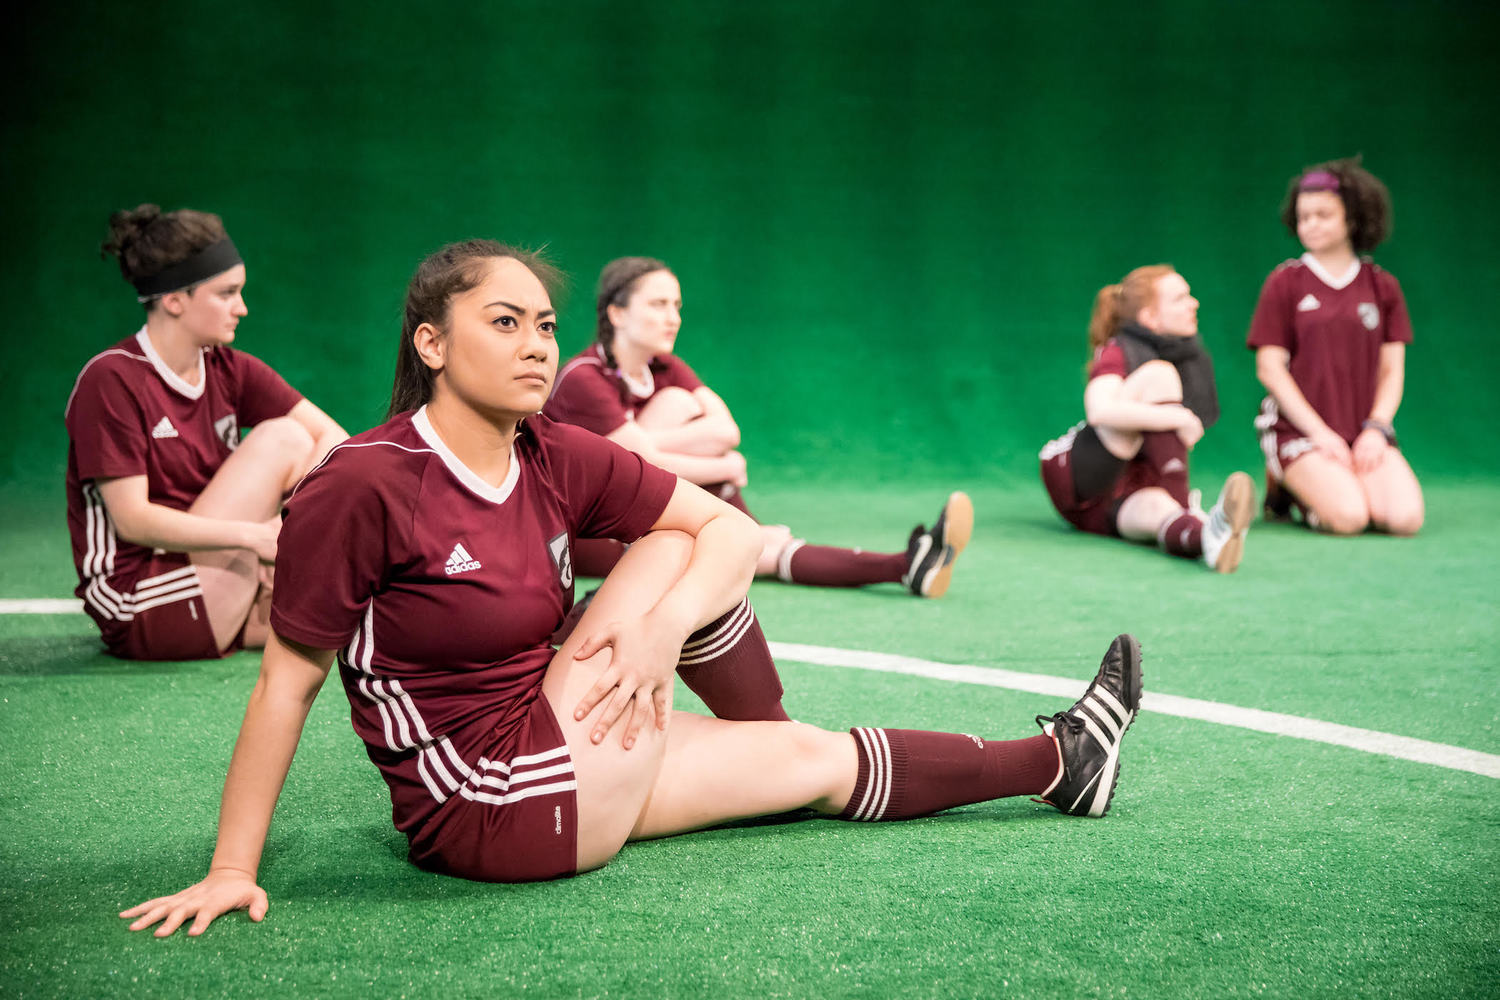 BWW Review: Full On Teen Female Bonding in THE WOLVES at Jungle Theater